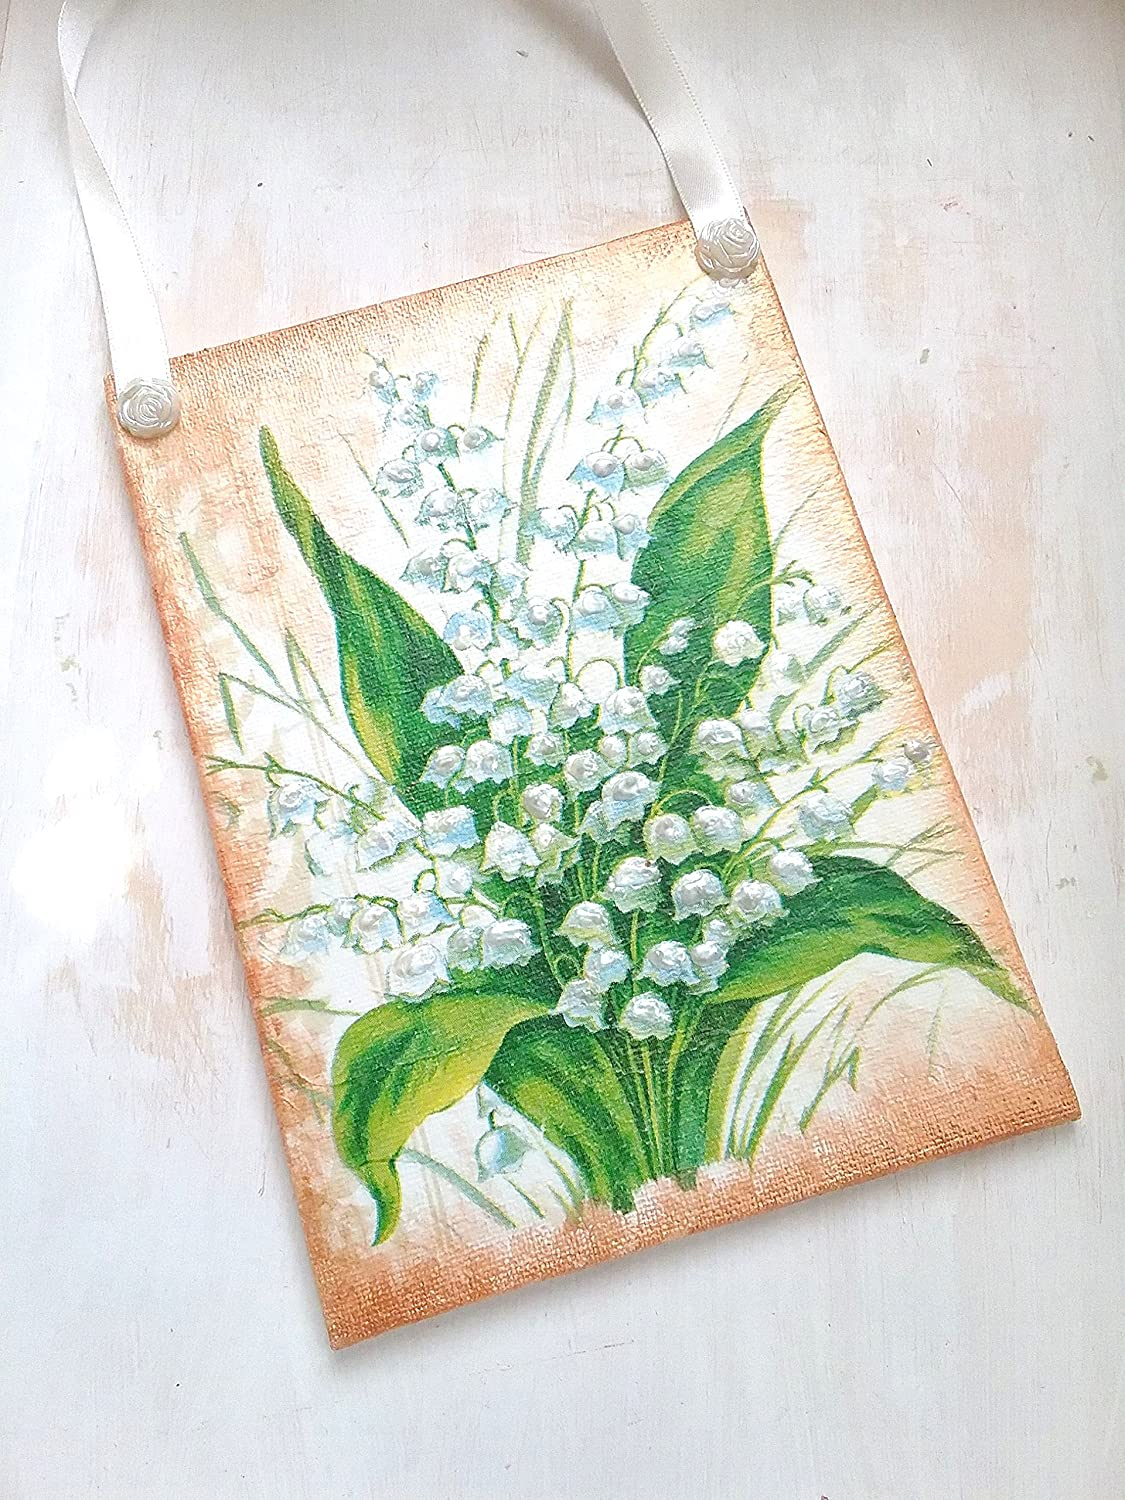 Lily Of The Valley Canvas Art Gifts For Her Small Birthday Gift Home Decor Wall Flowers